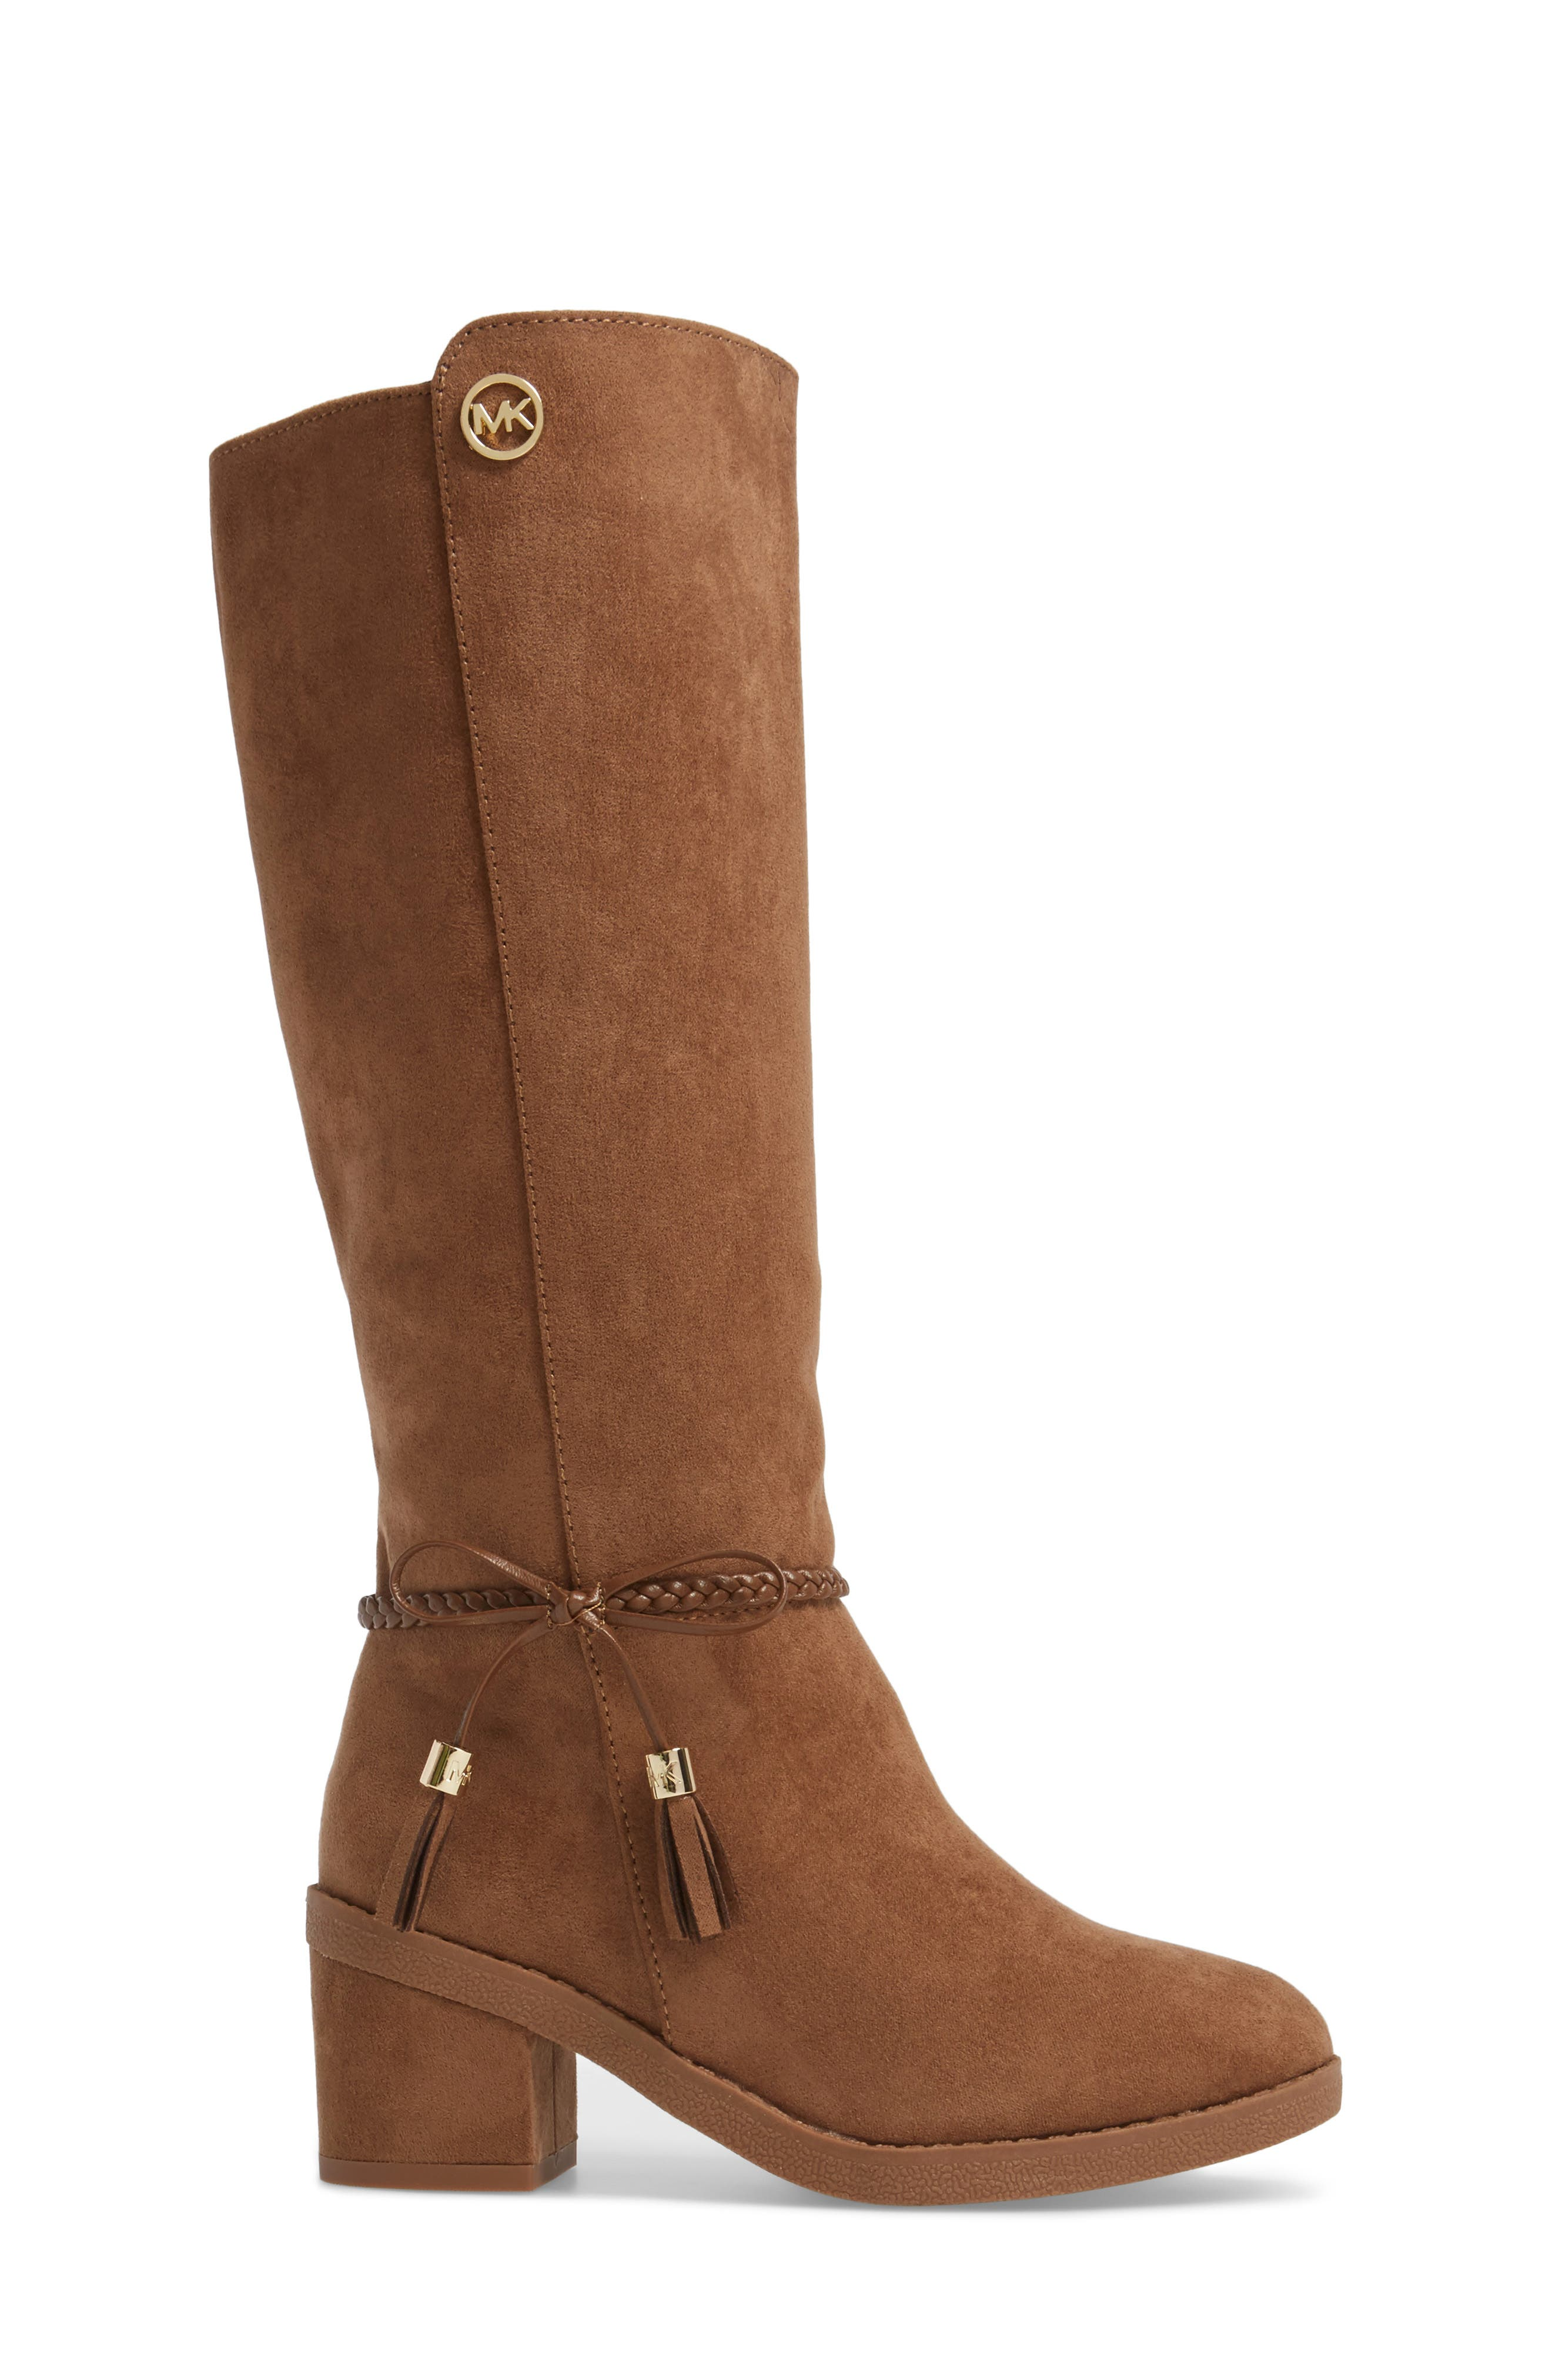 Fawn Simmy Riding Boot,                             Alternate thumbnail 3, color,                             Caramel Faux Suede